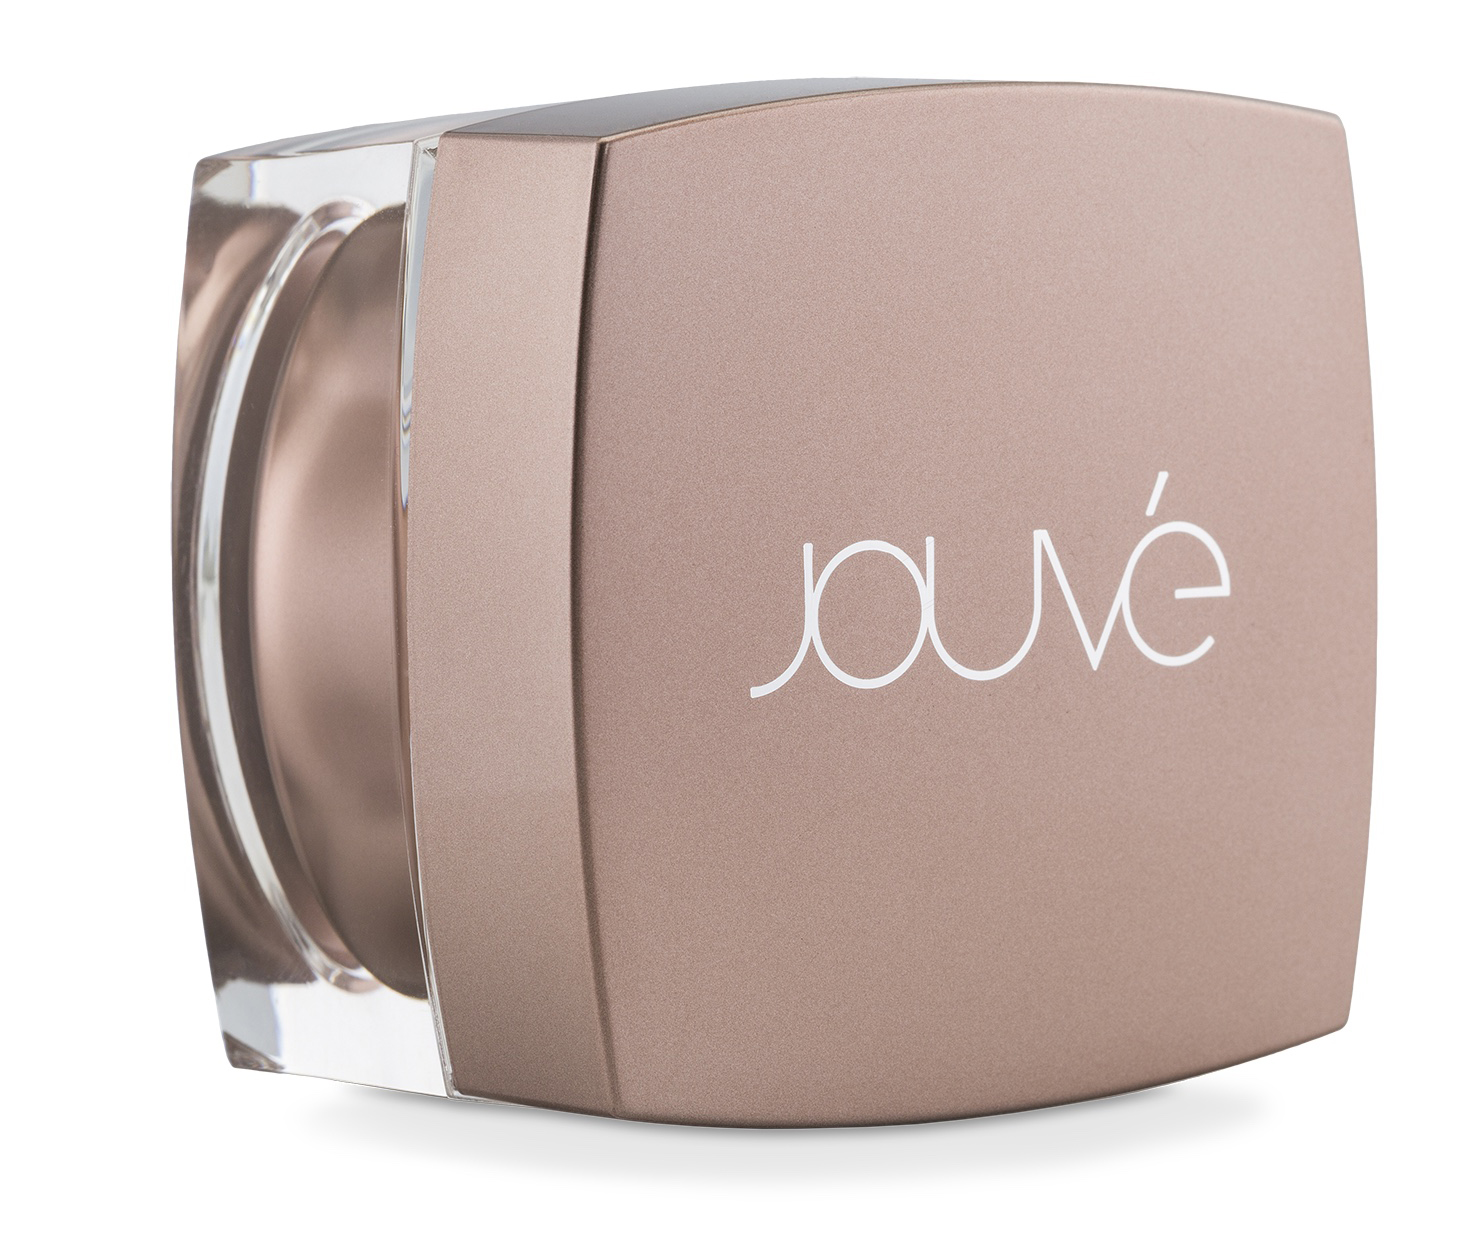 Directions for Jouvé skin care system: -